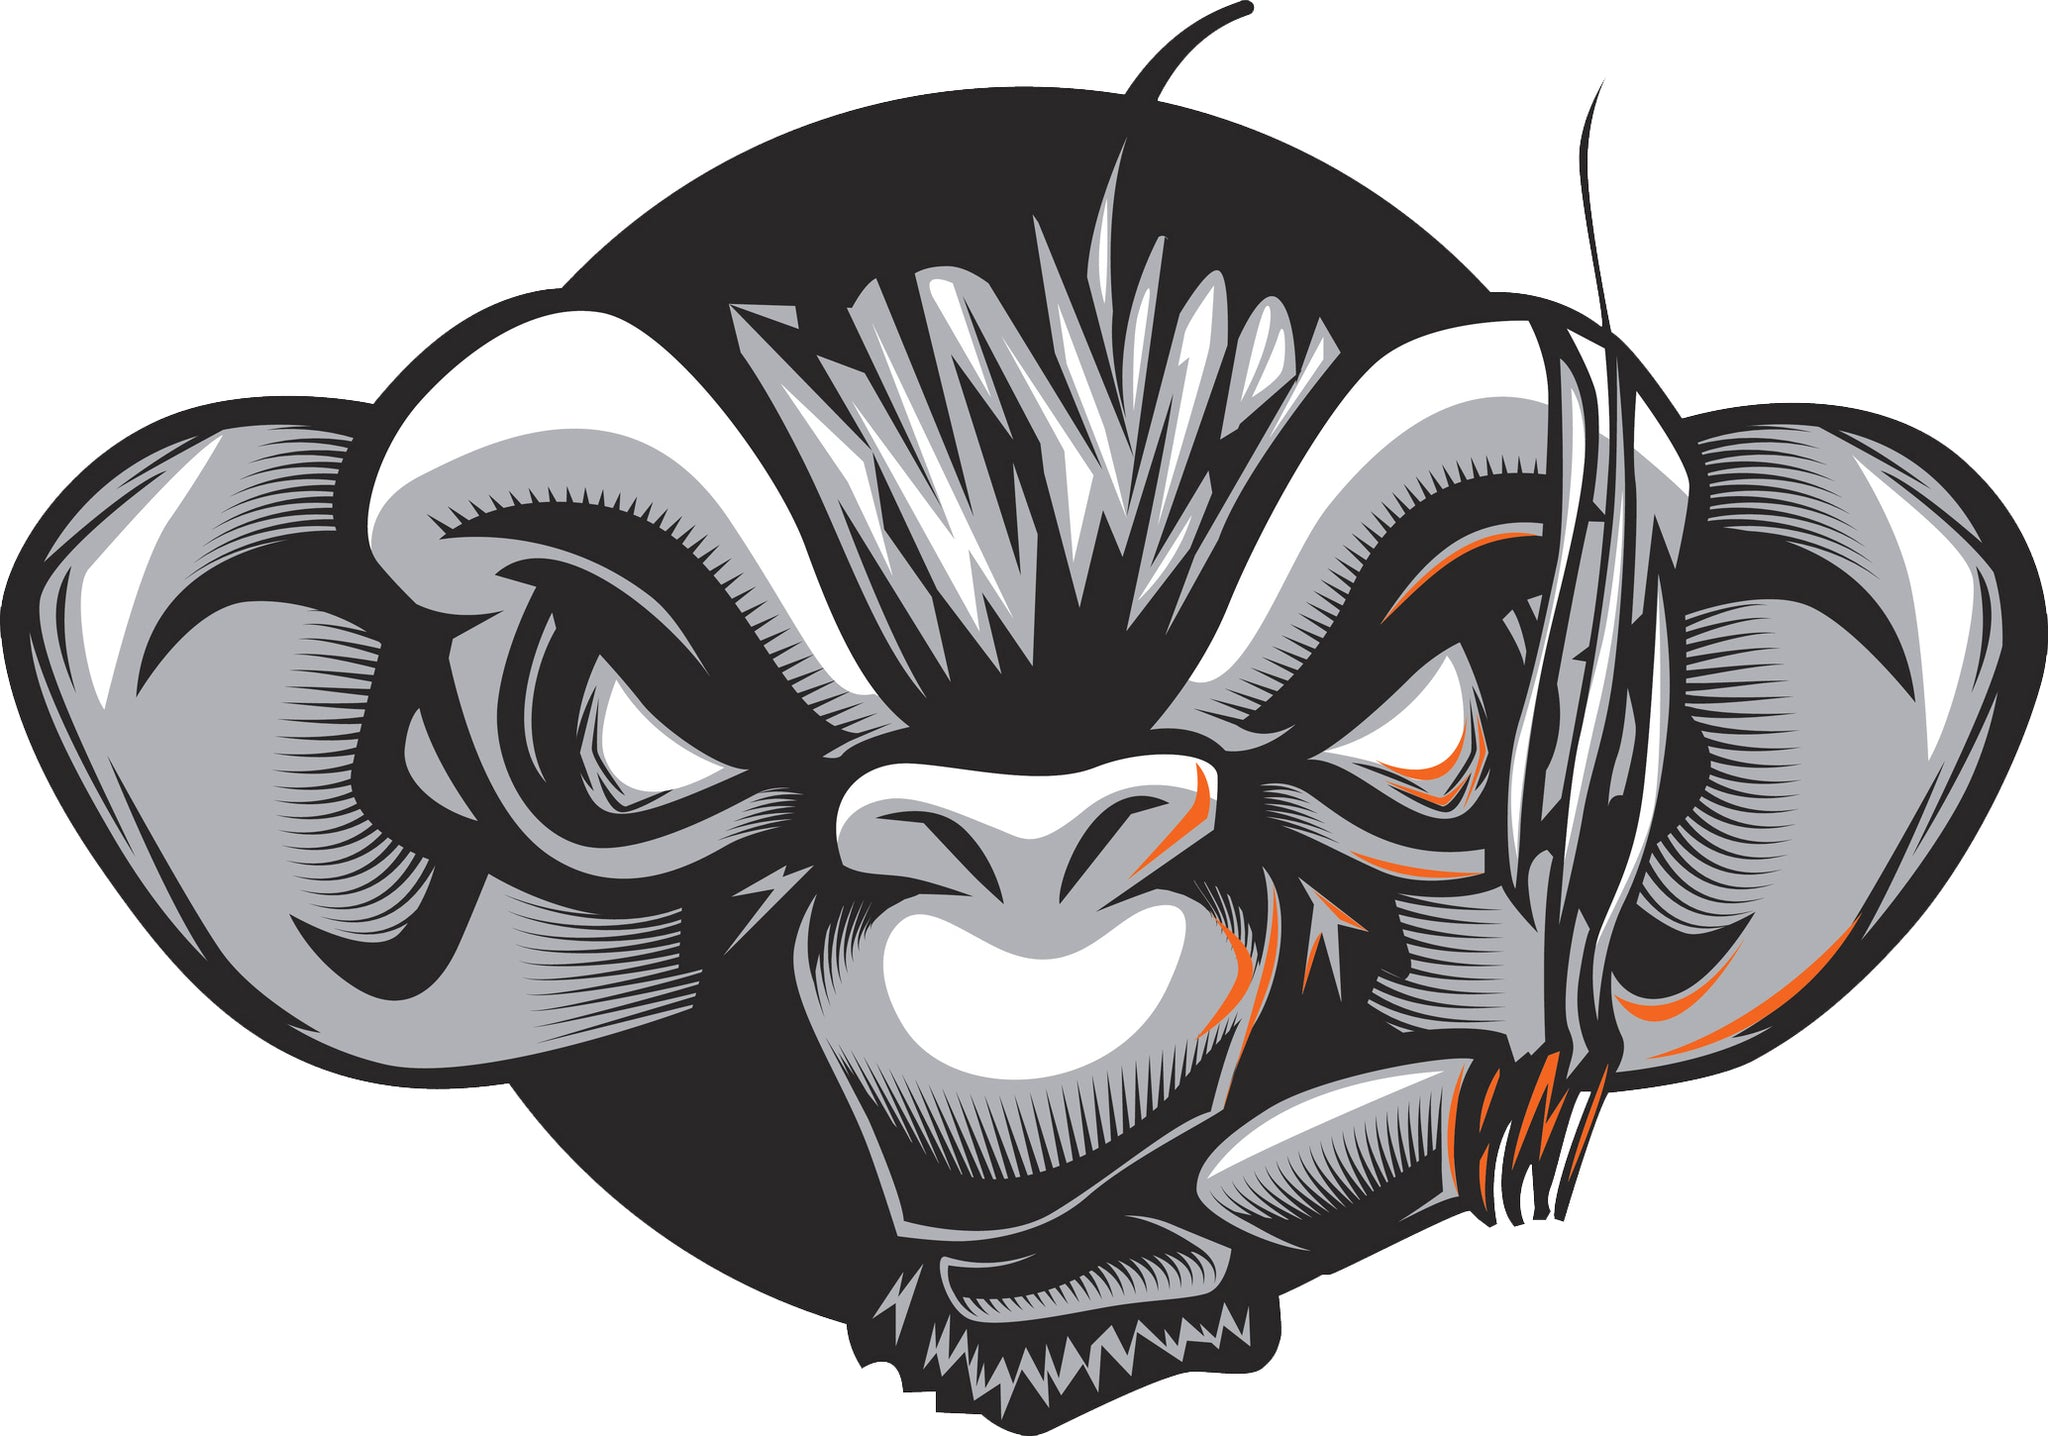 Creepy Black and White Monkey Face with Cigar Cartoon Vinyl Decal Sticker